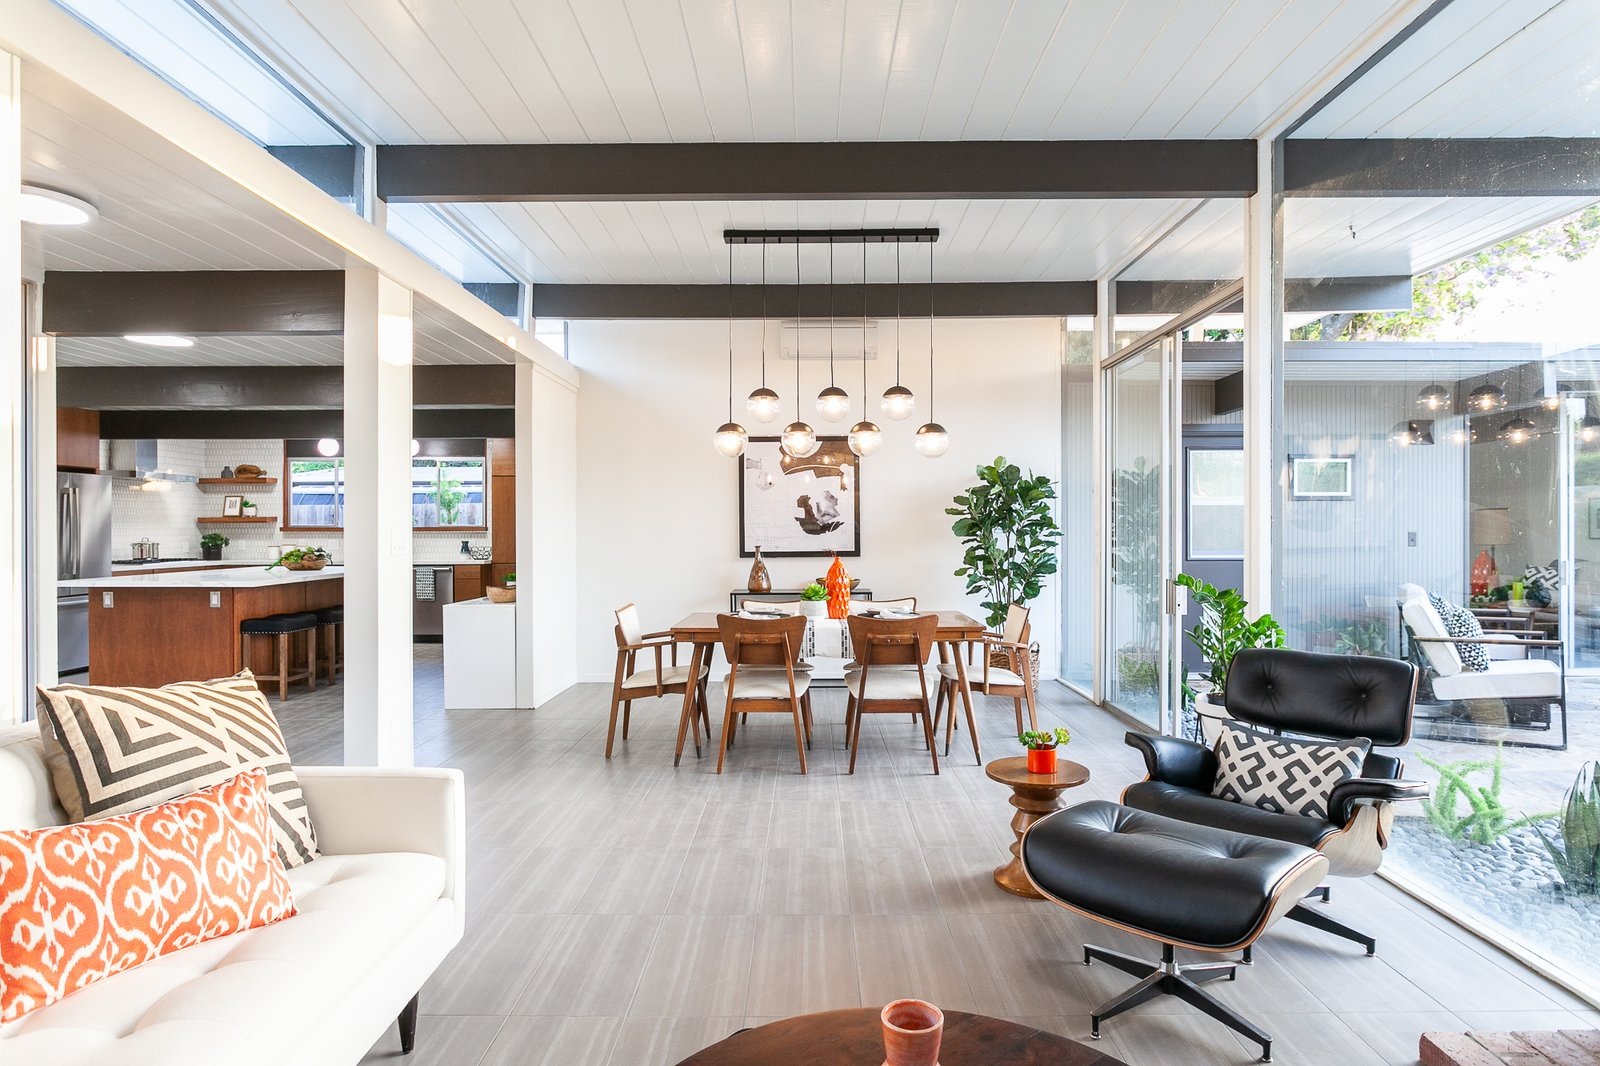 The living and dining room feature a wall of glass and a classic tongue-and-groove ceiling.